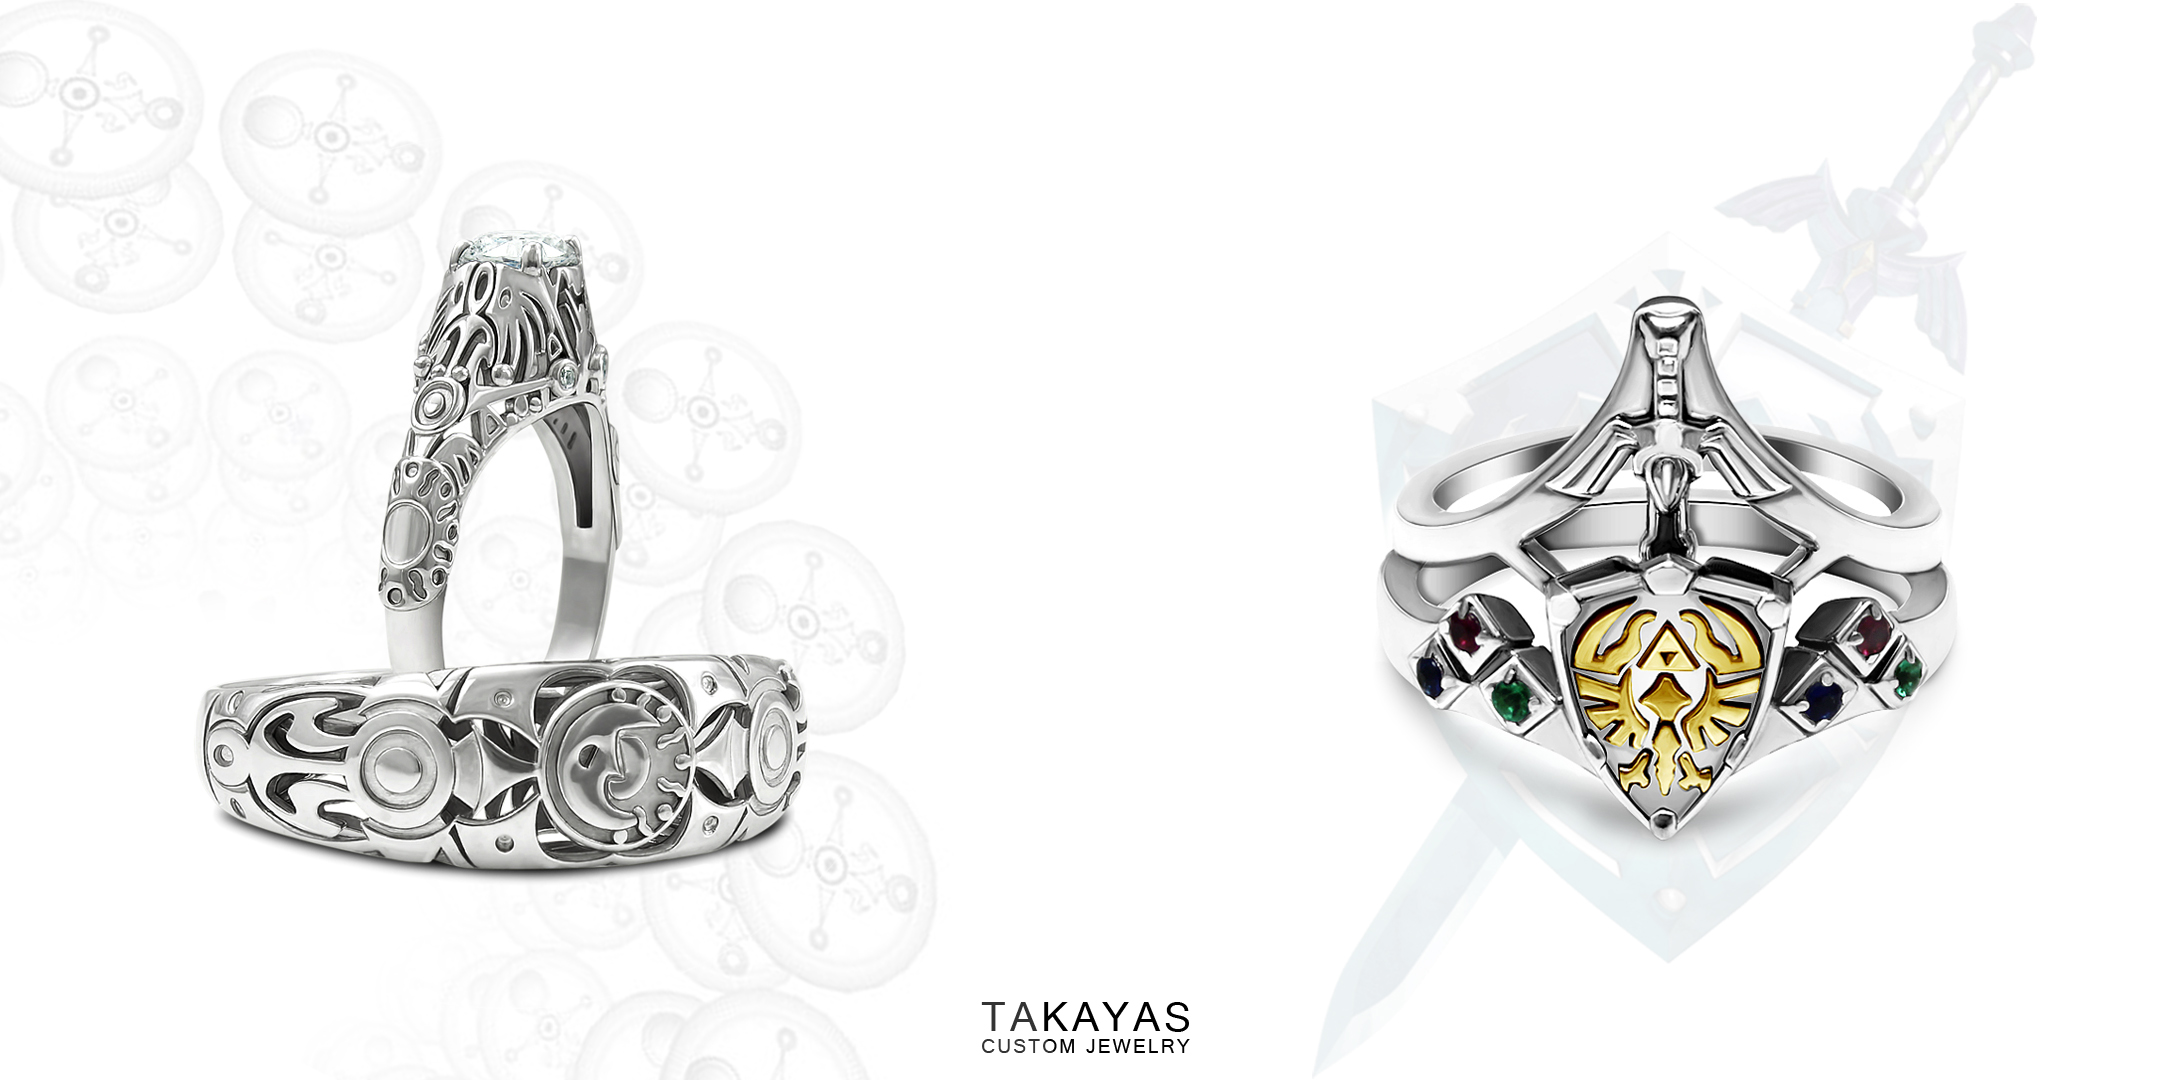 Custom Majora's Mask clocktower wedding ring set and Hylian Shield and Sword ring set by Takayas Custom Jewelry